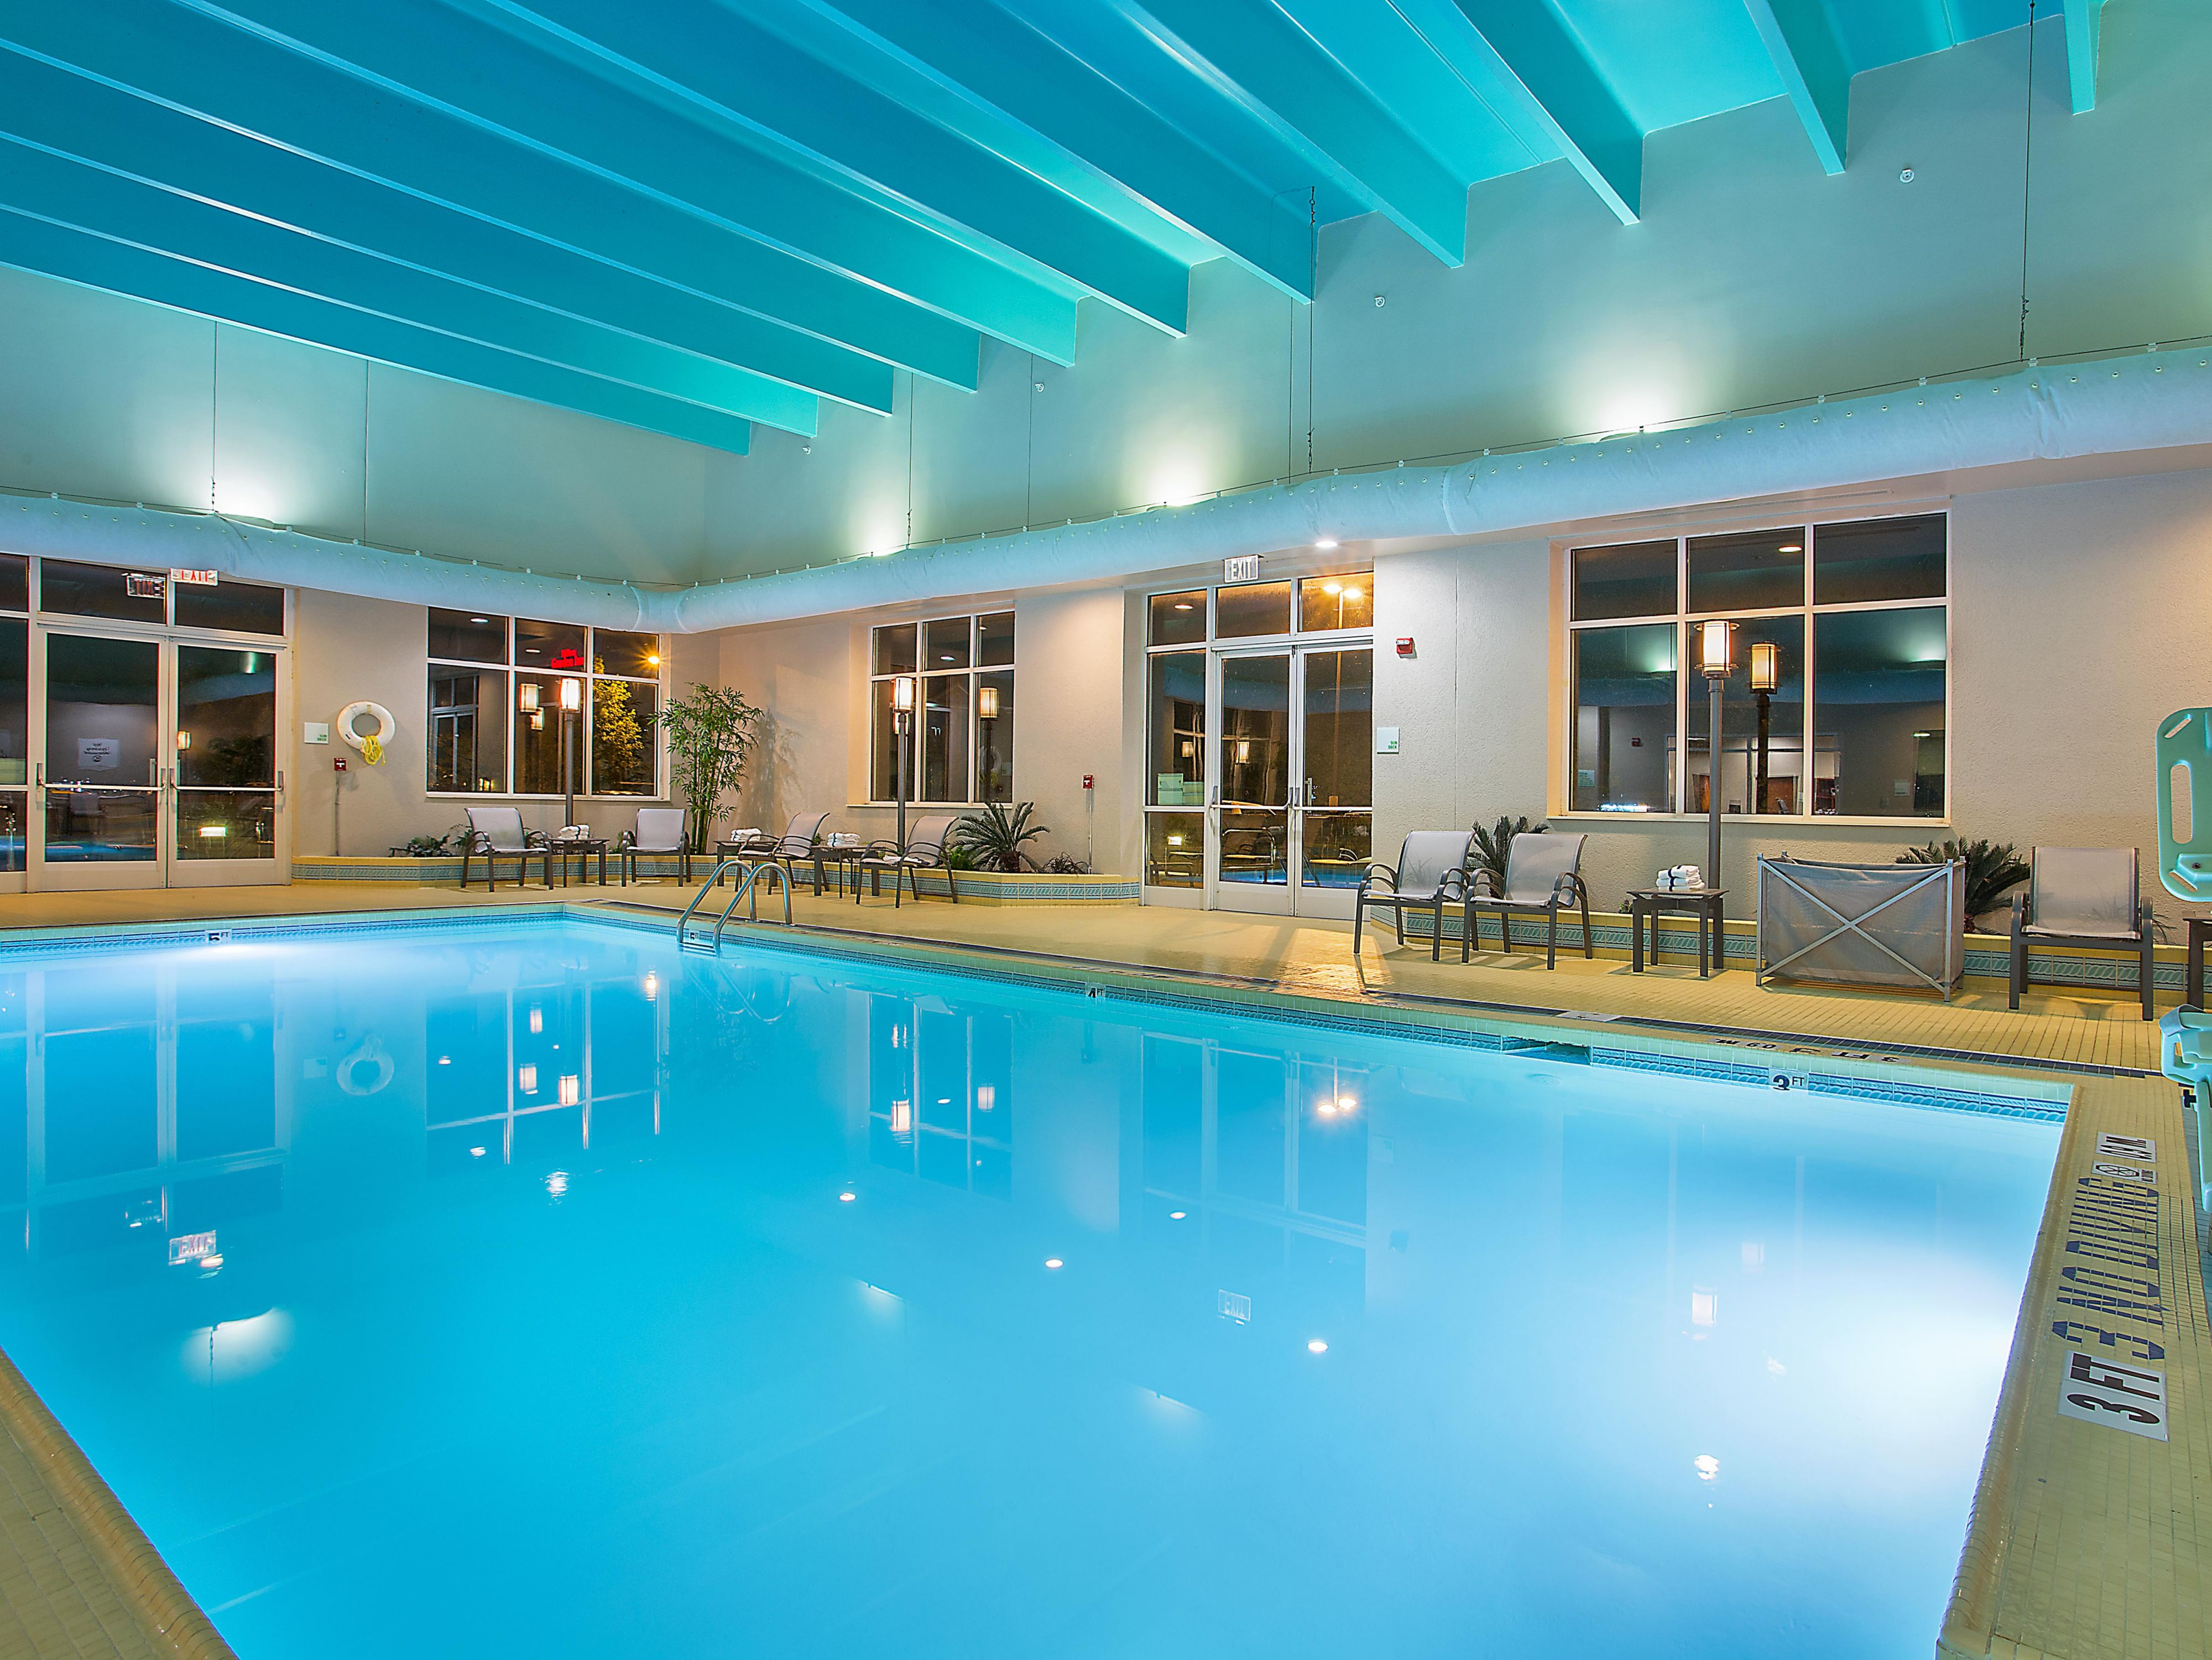 Start your day with a relaxing swim in our indoor, heated pool.